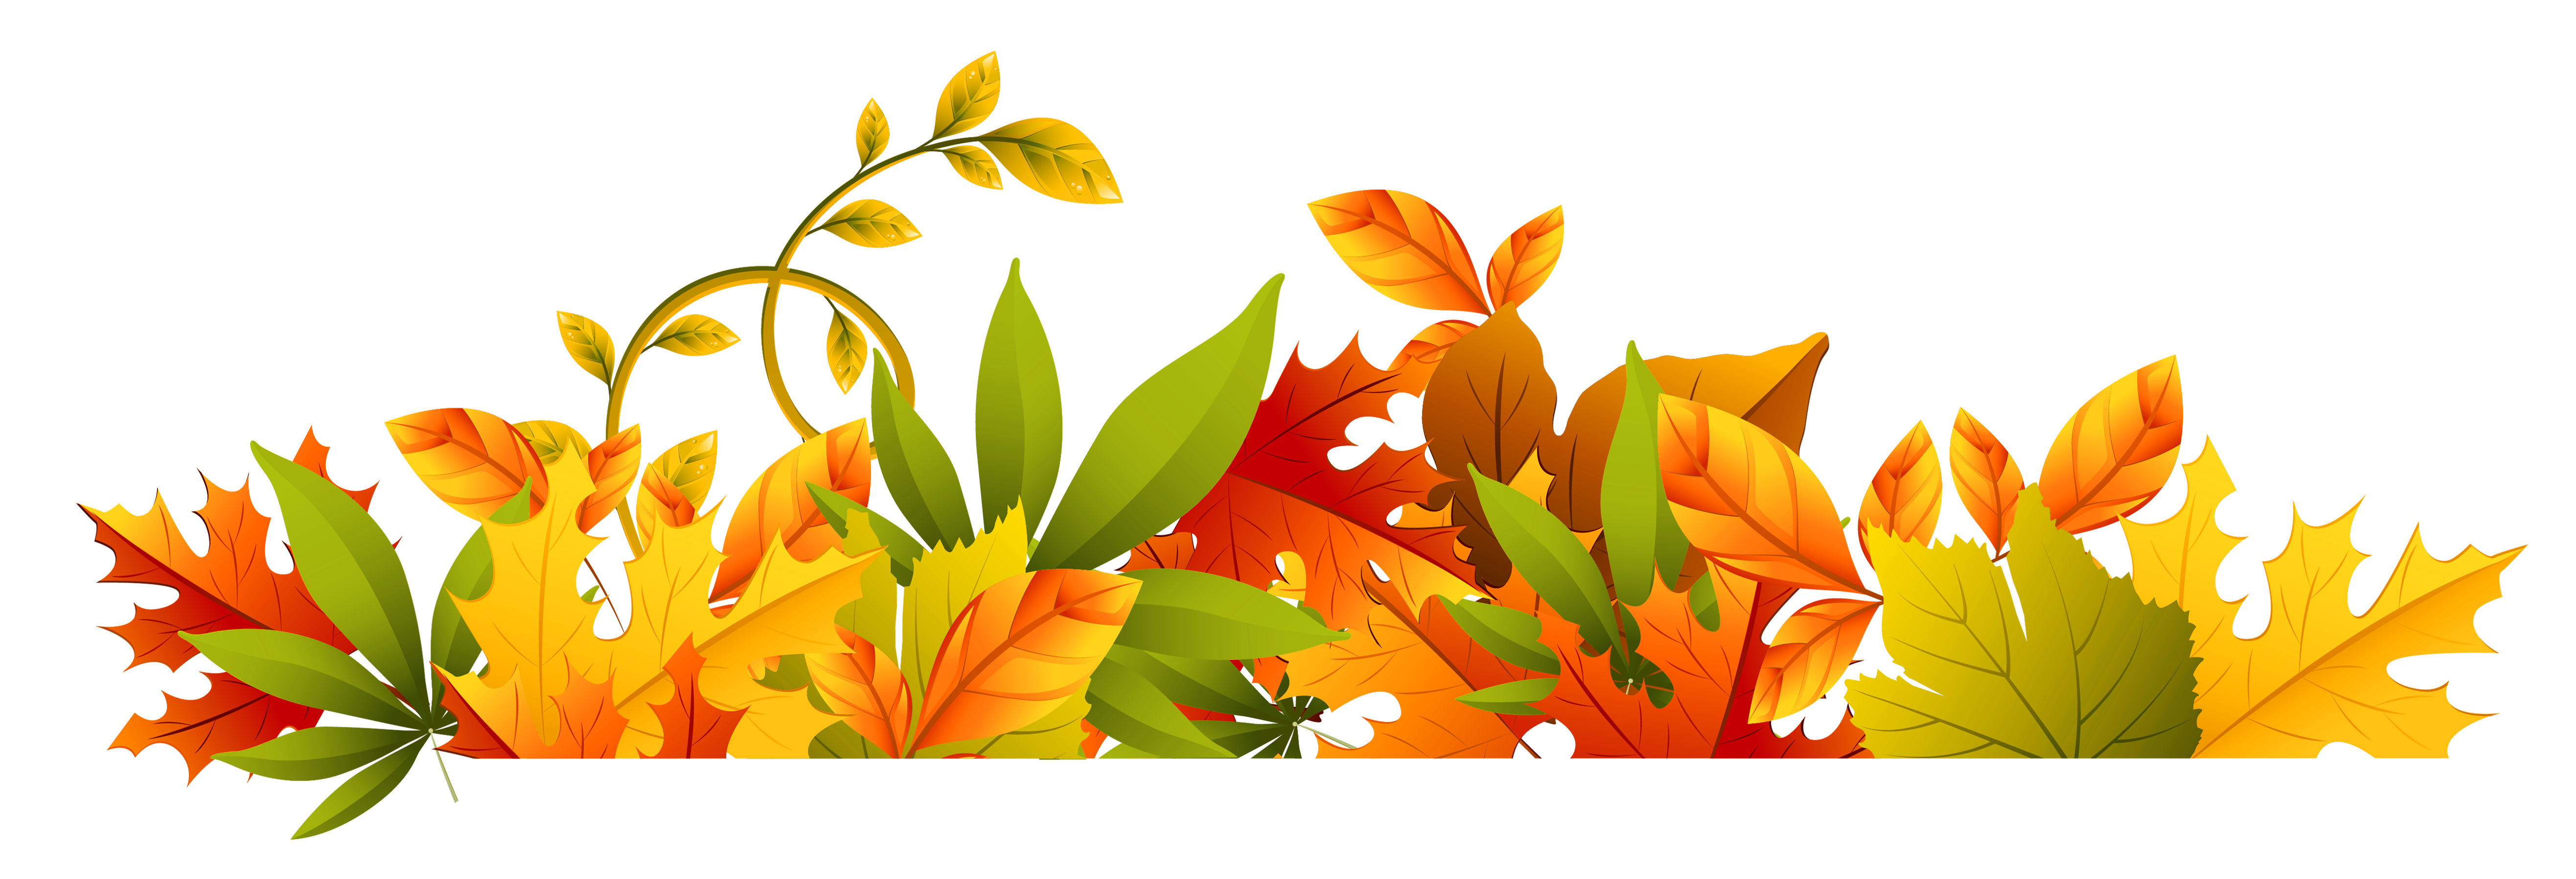 Fall Flowers Clip Art - clipartall ...